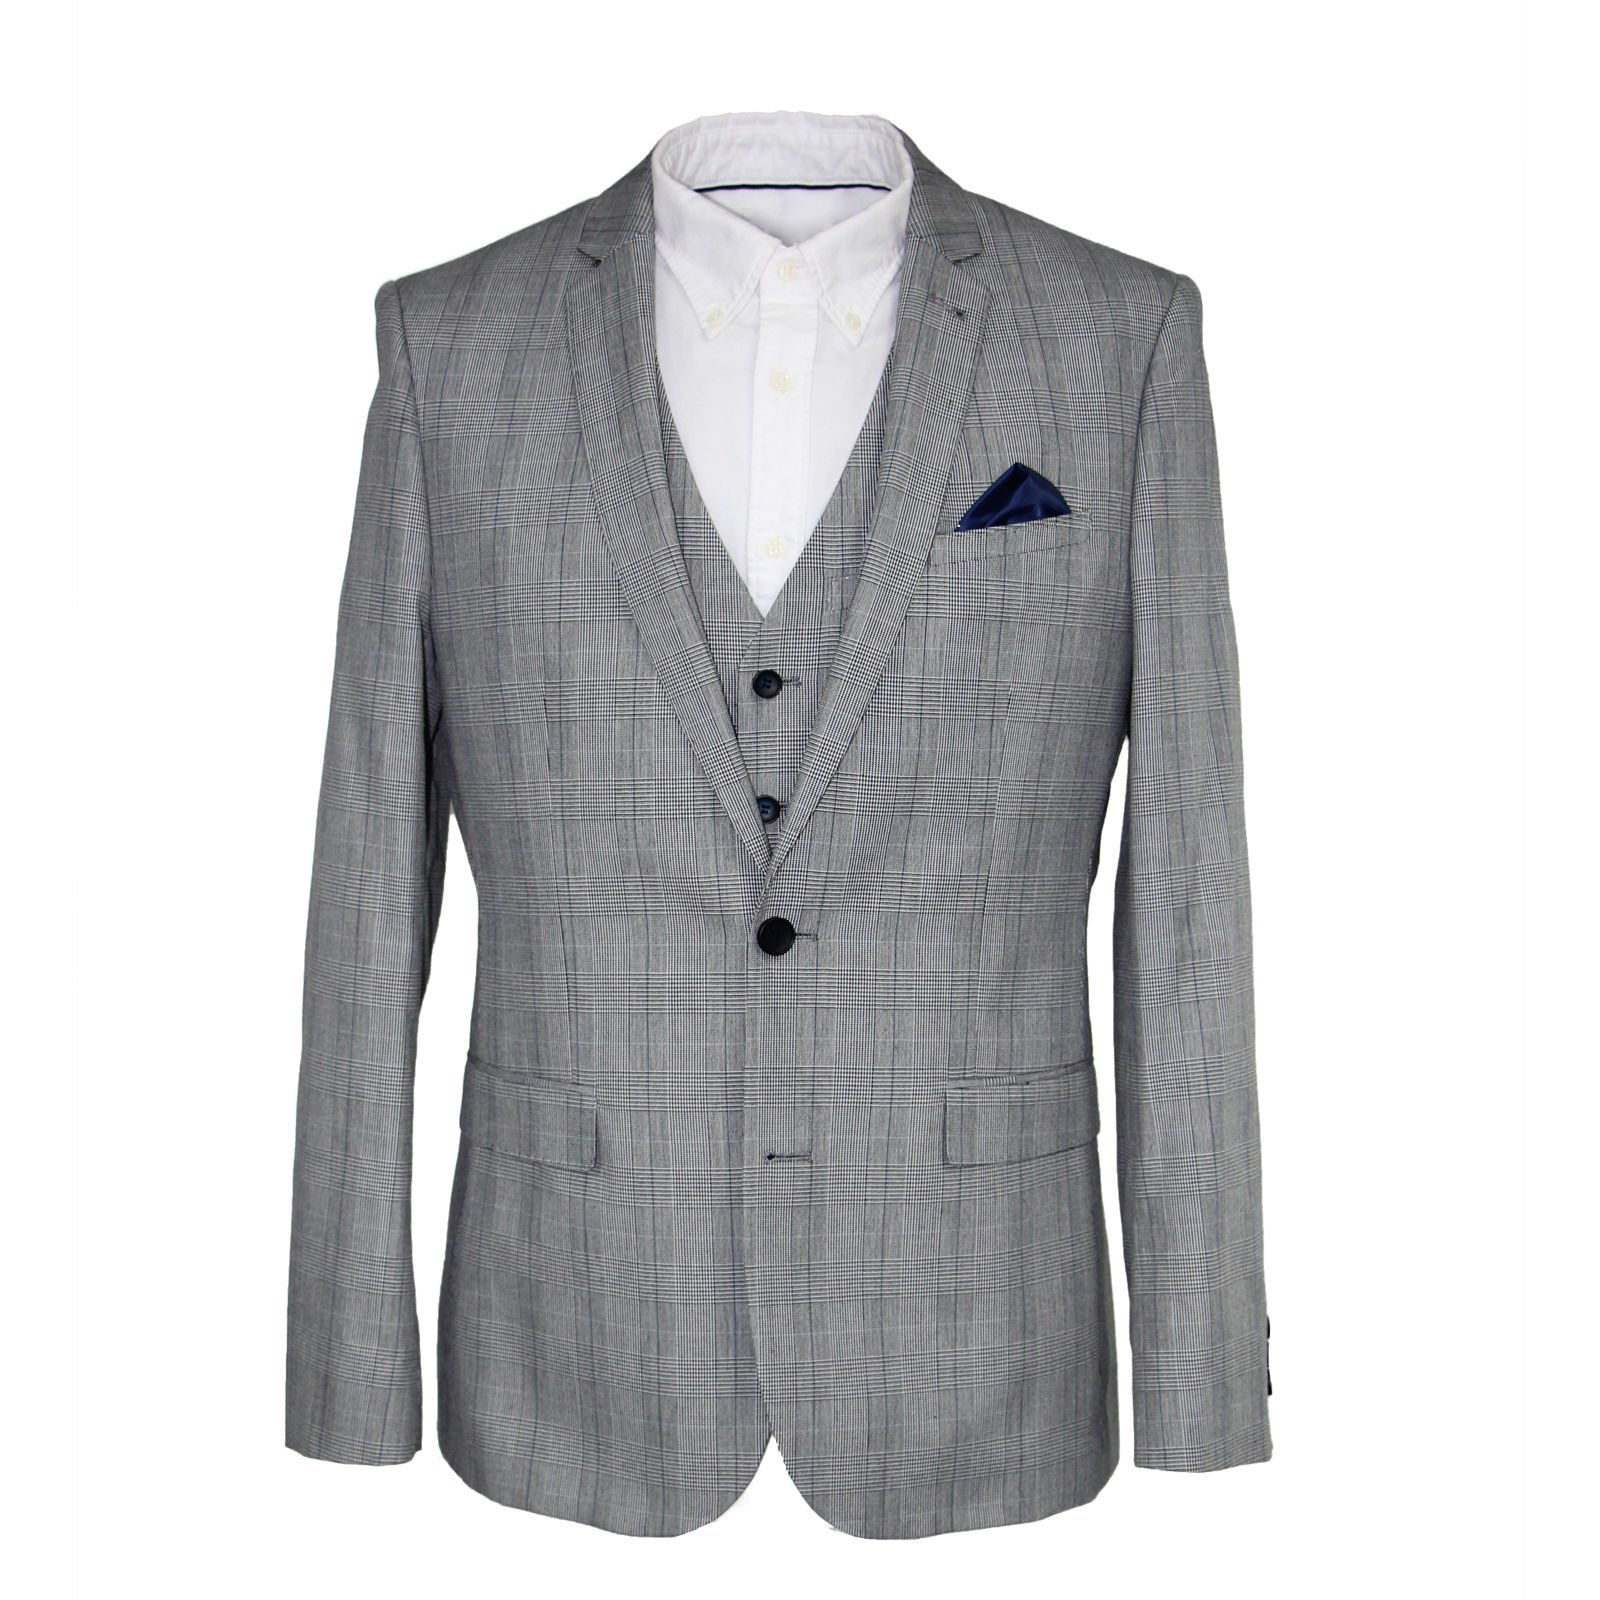 Harry Brown Three Piece Slim Fit Cotton Suit in Grey Check 40R